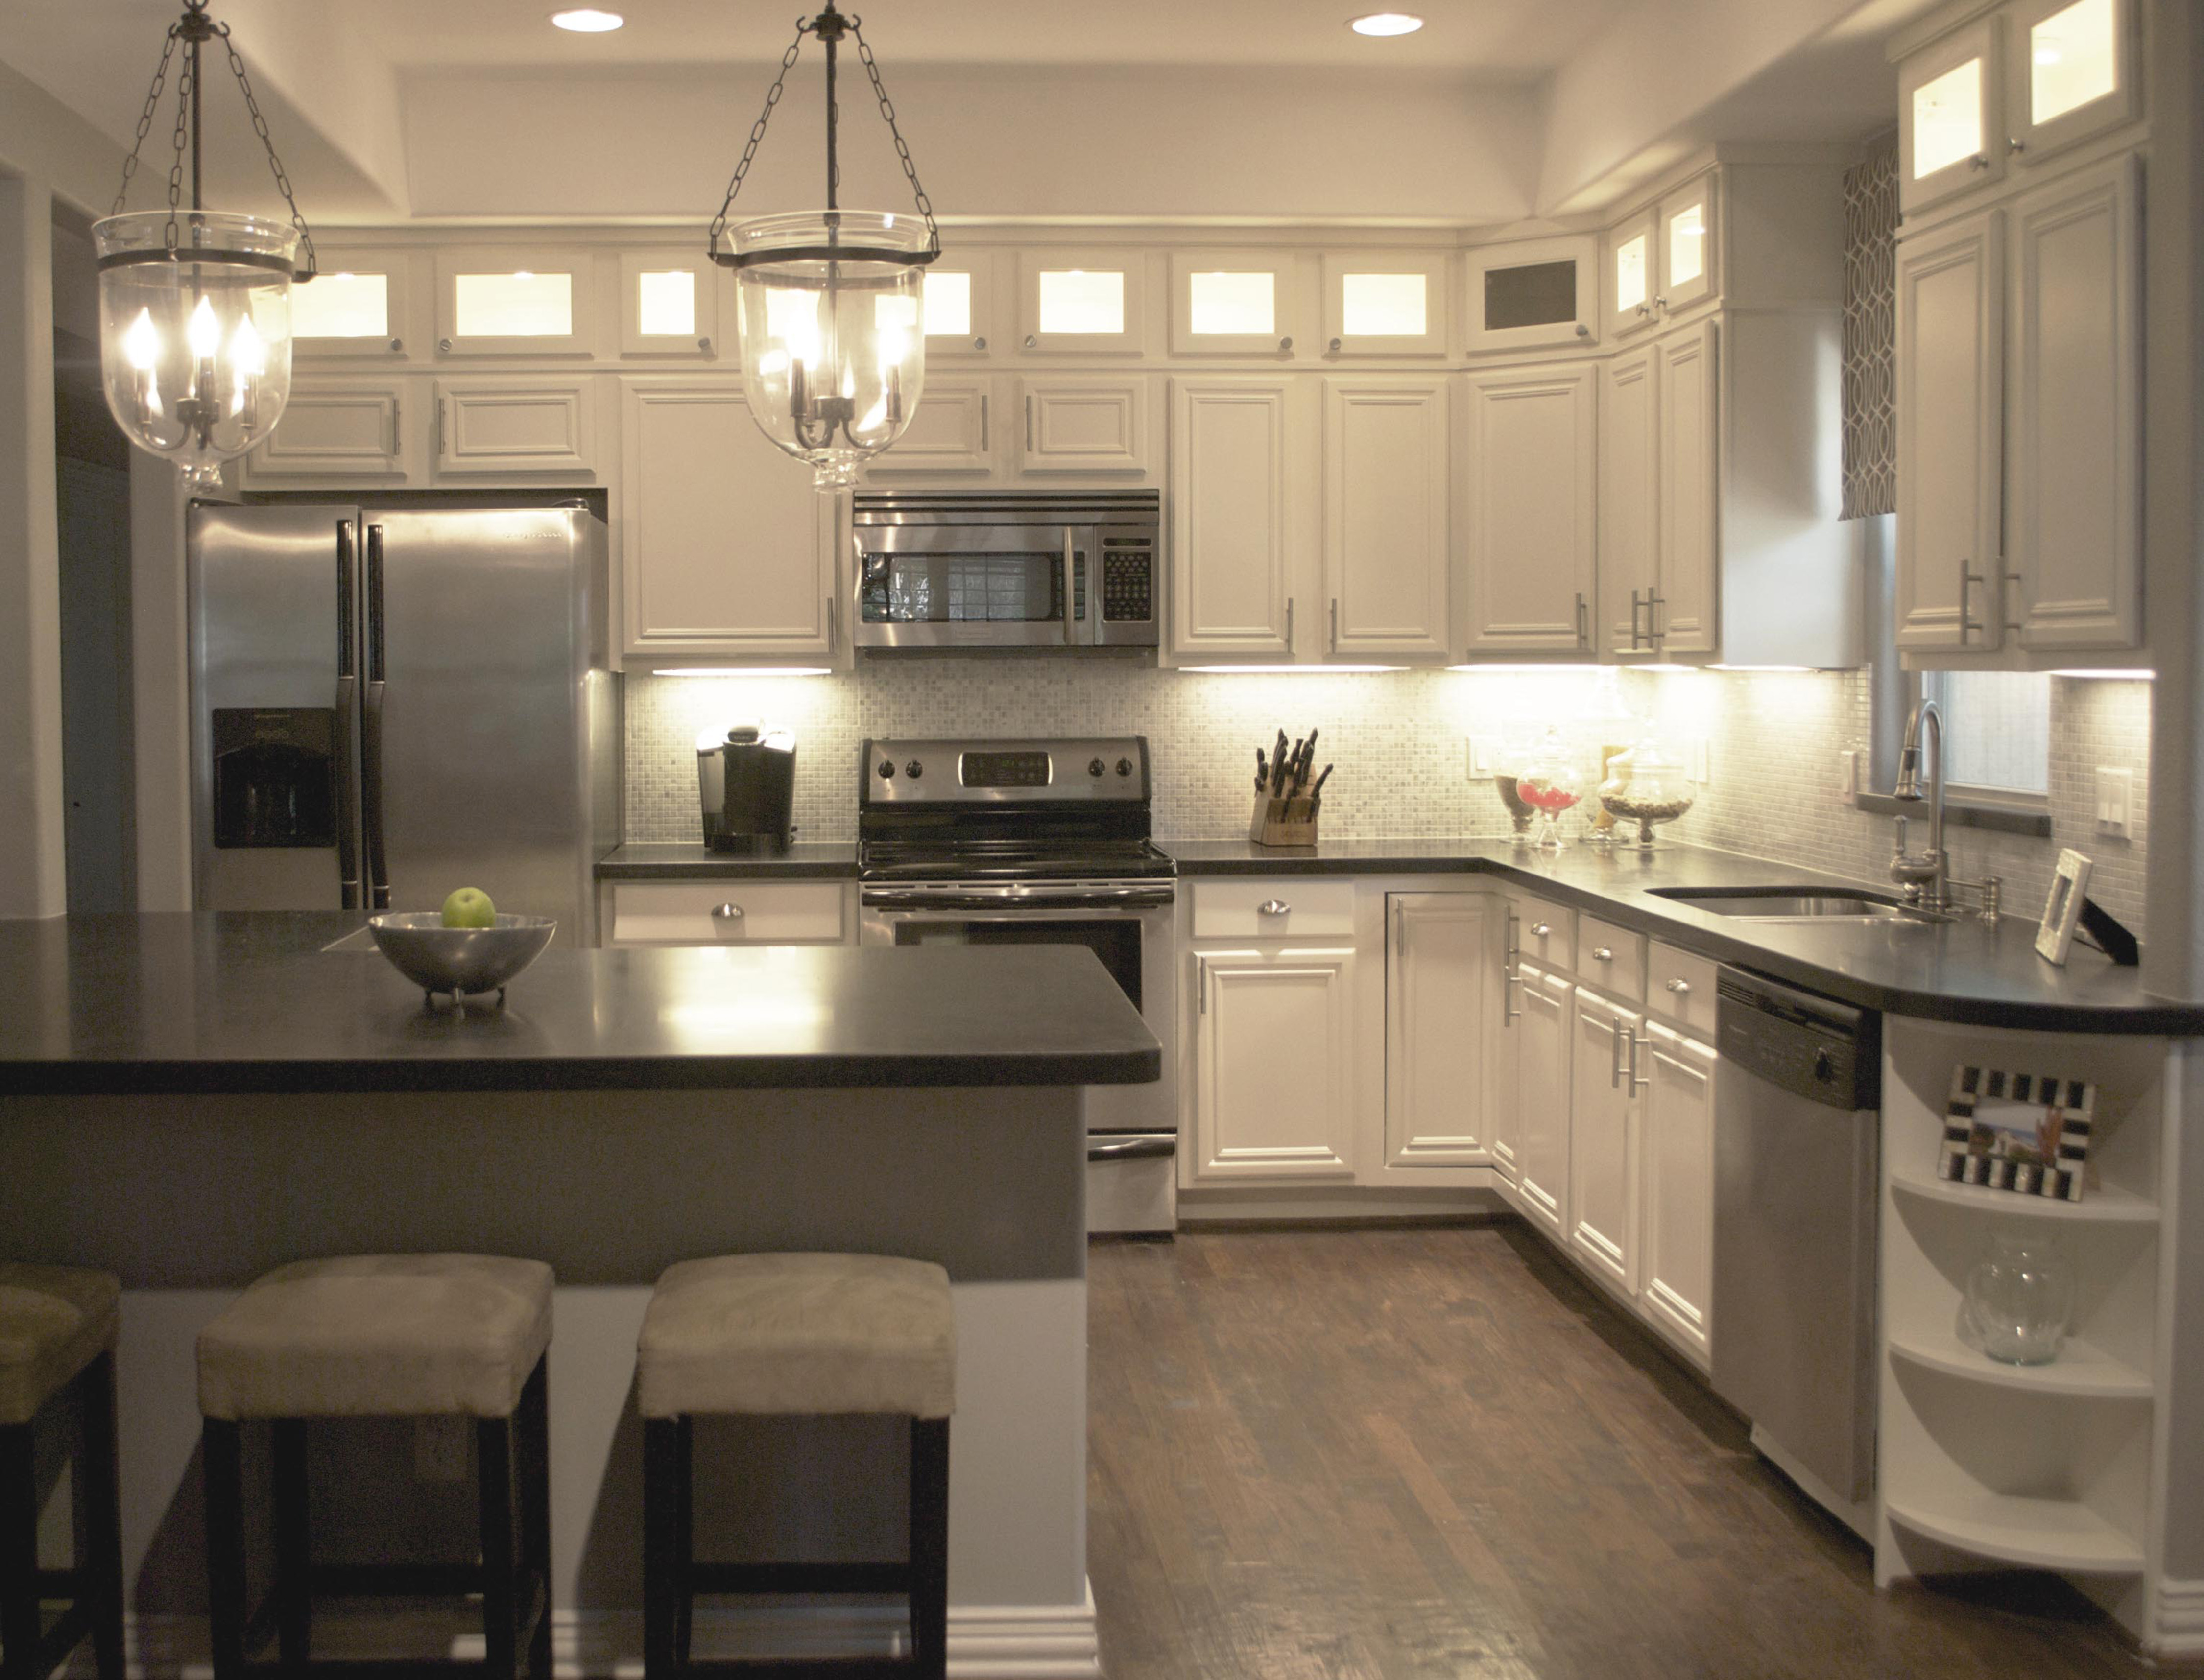 northernvalleyconstructioninc how to remodel kitchen Learn how we increase home values every day